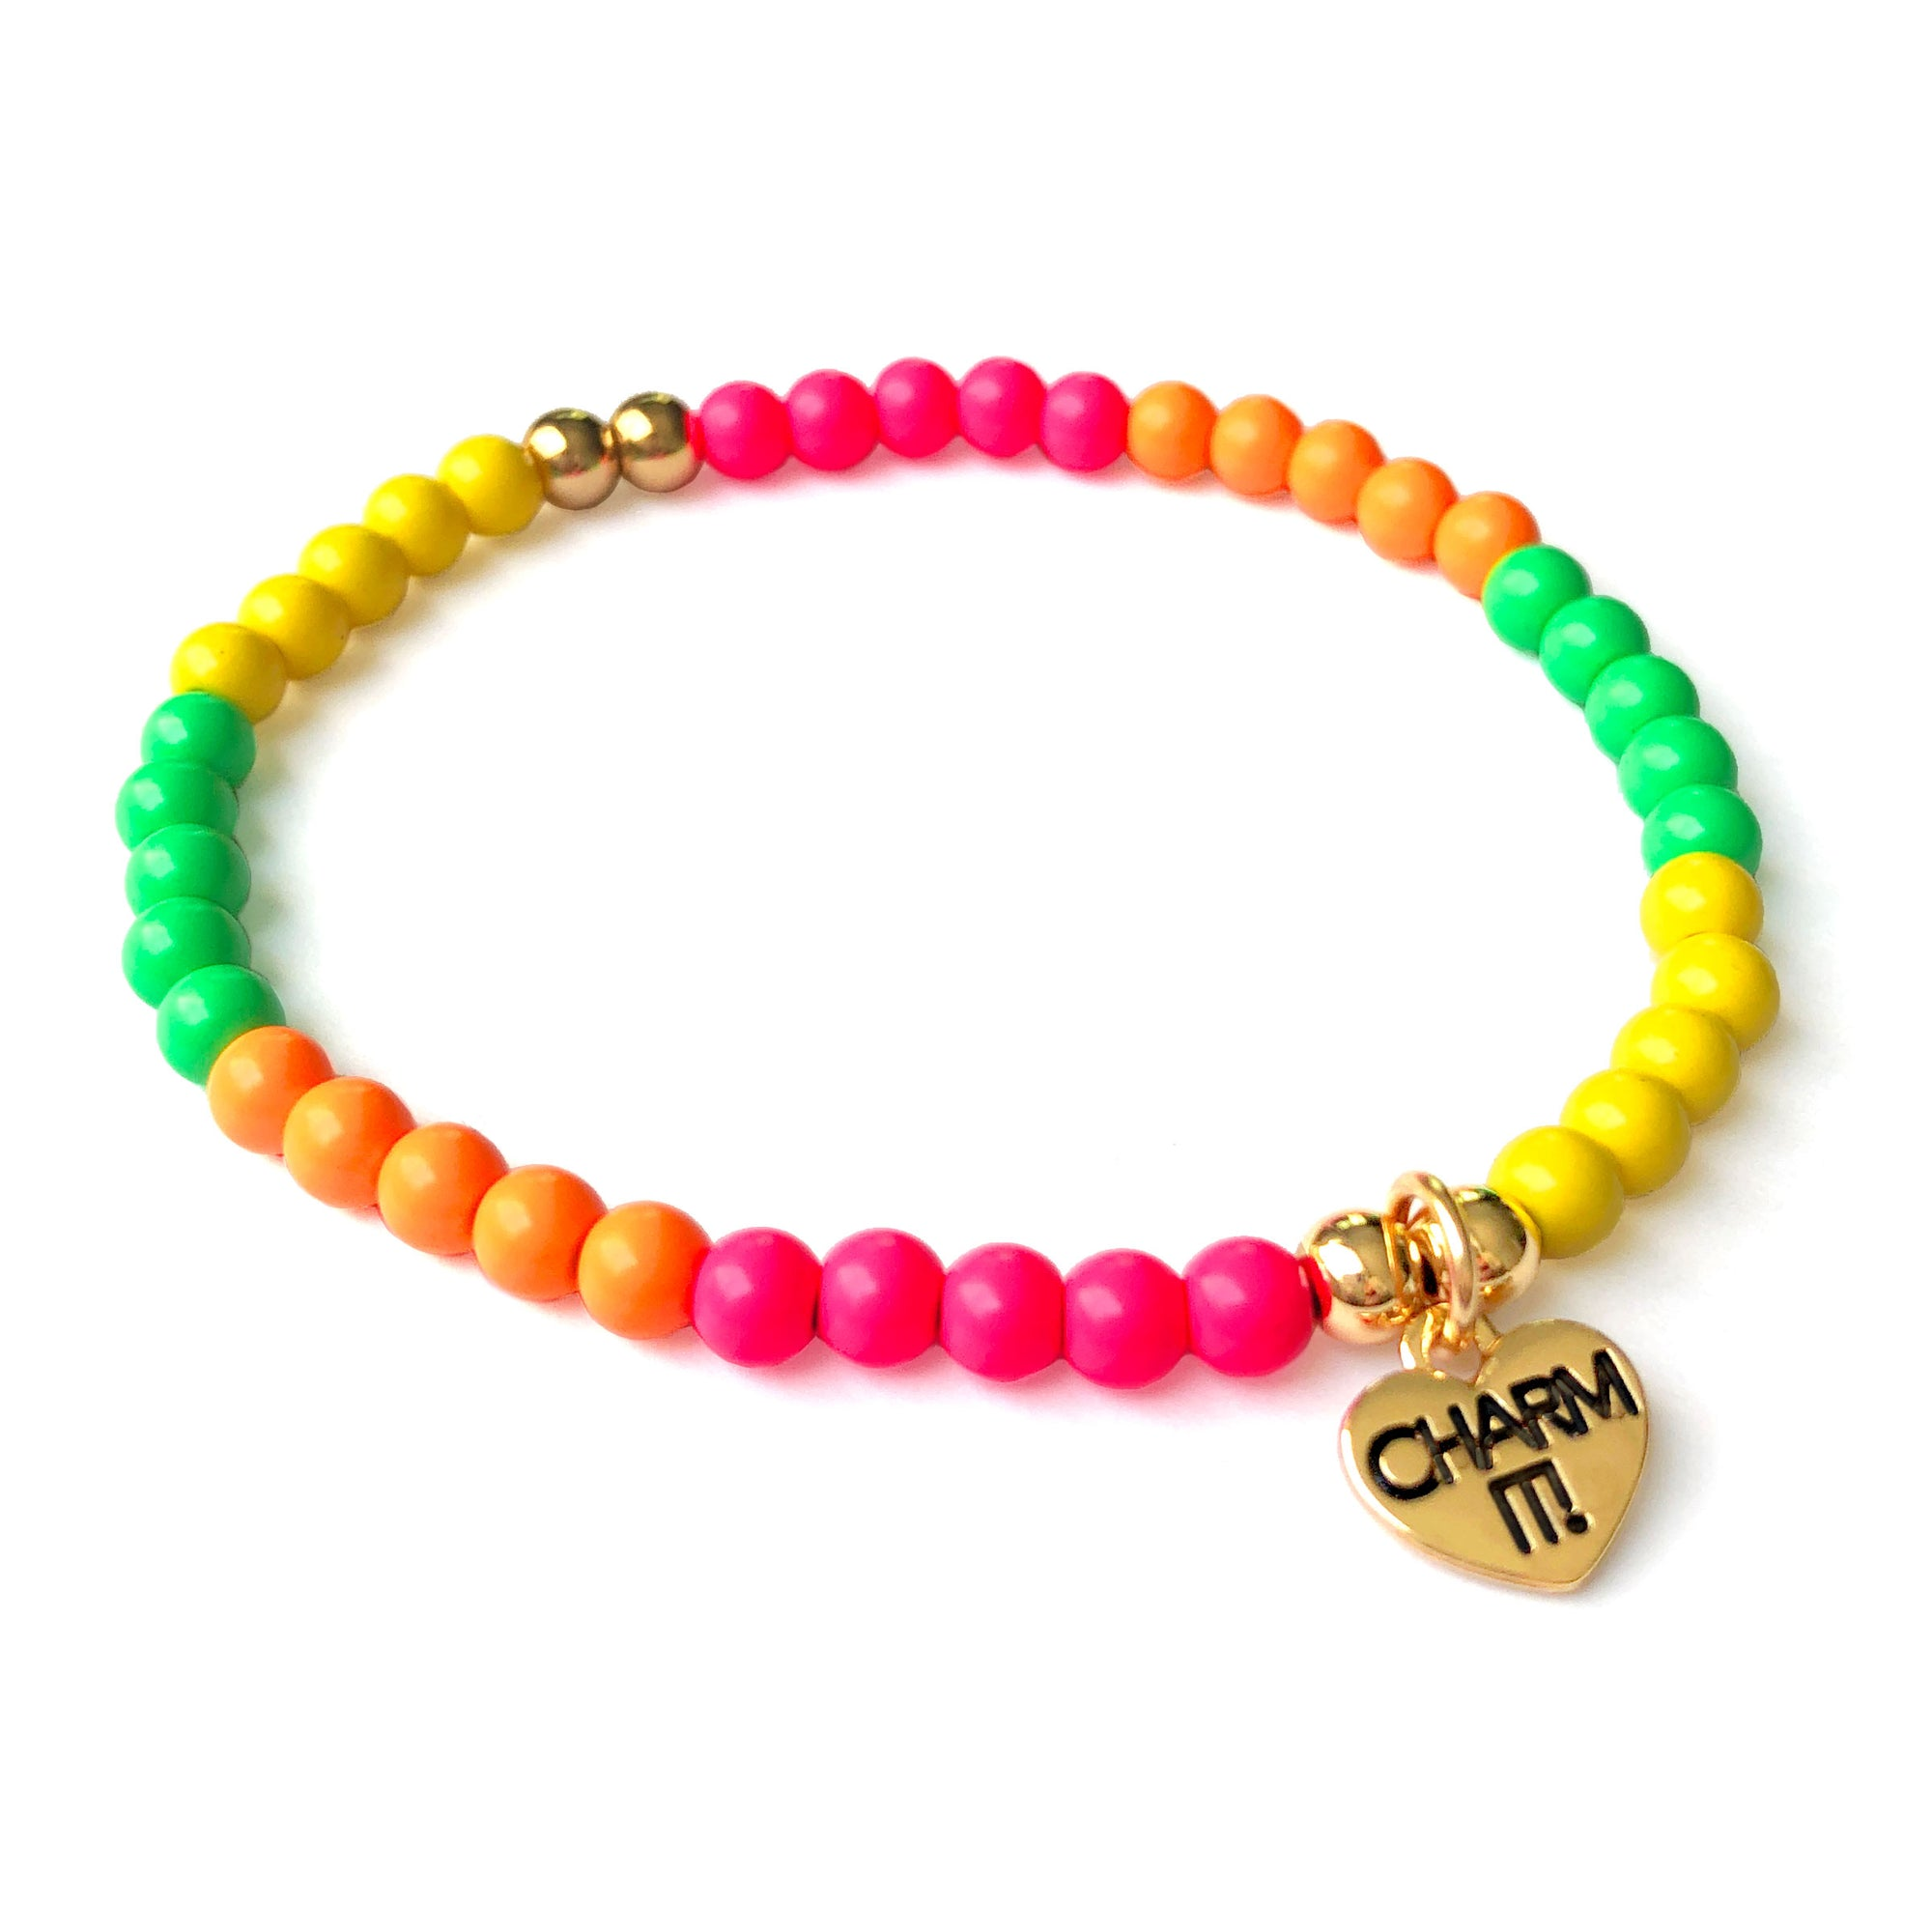 CHARM IT! 4mm Neon Stretch Bead Bracelet